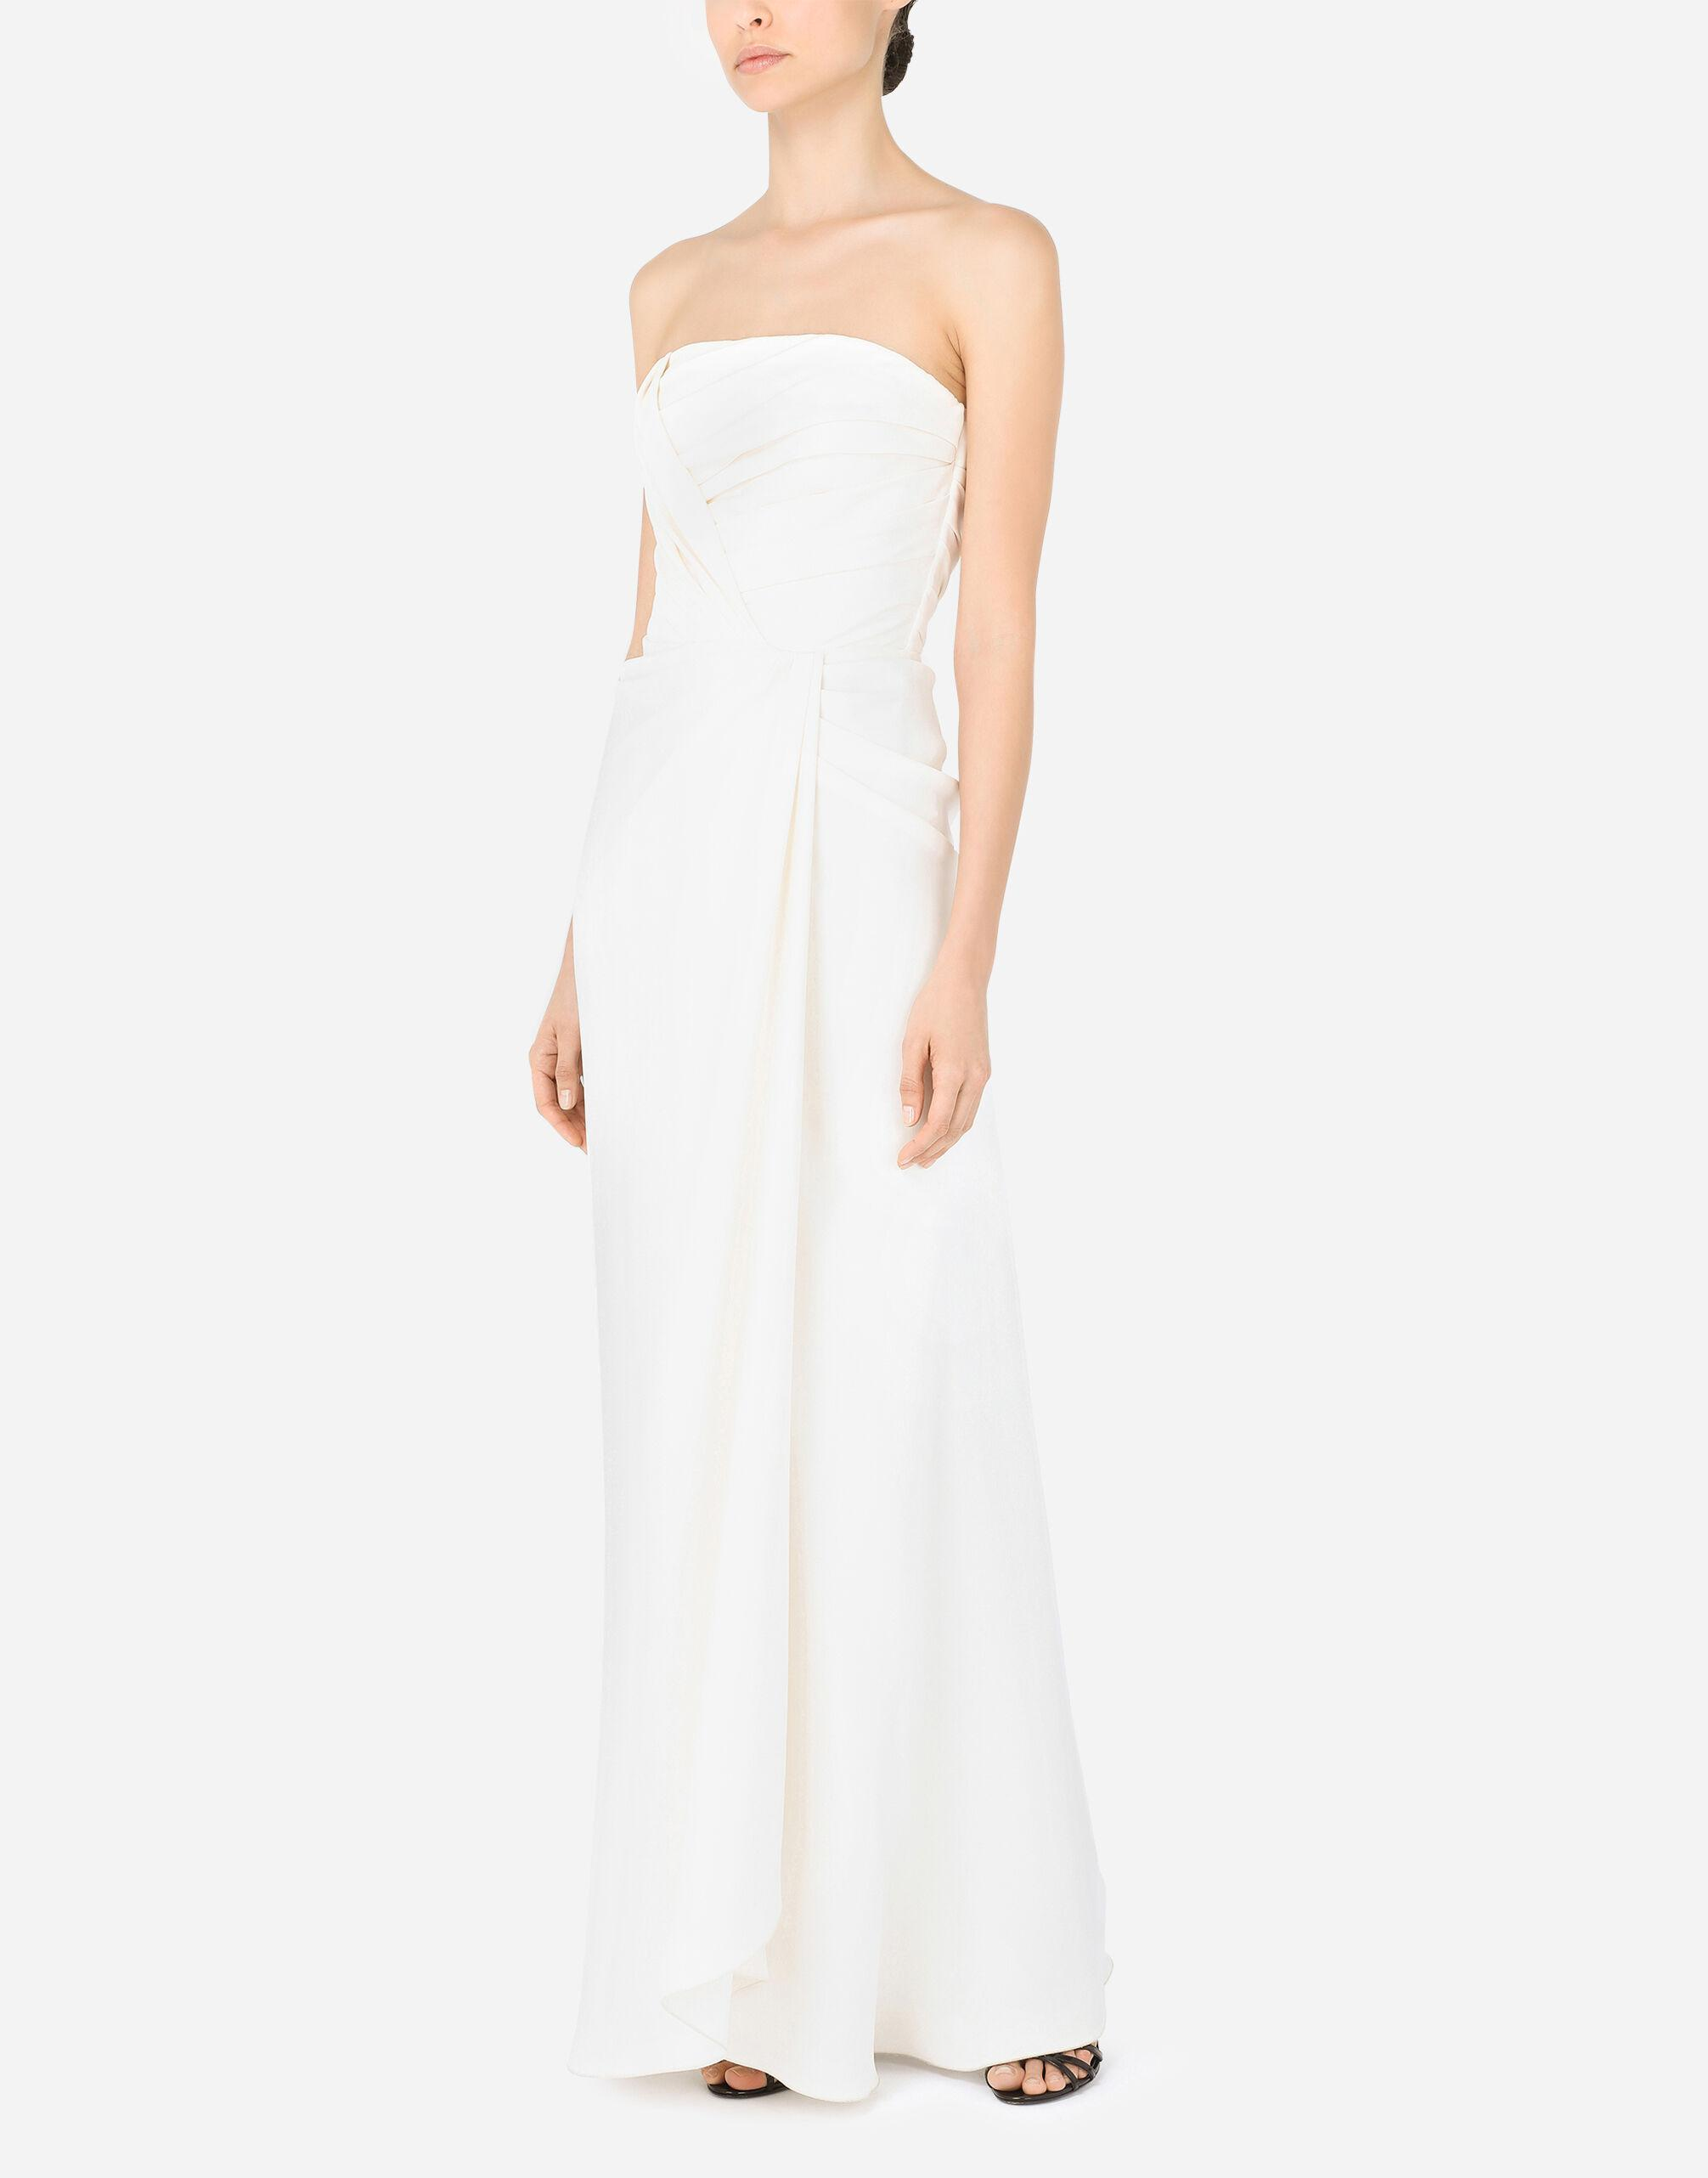 Long sable dress with side slit 2